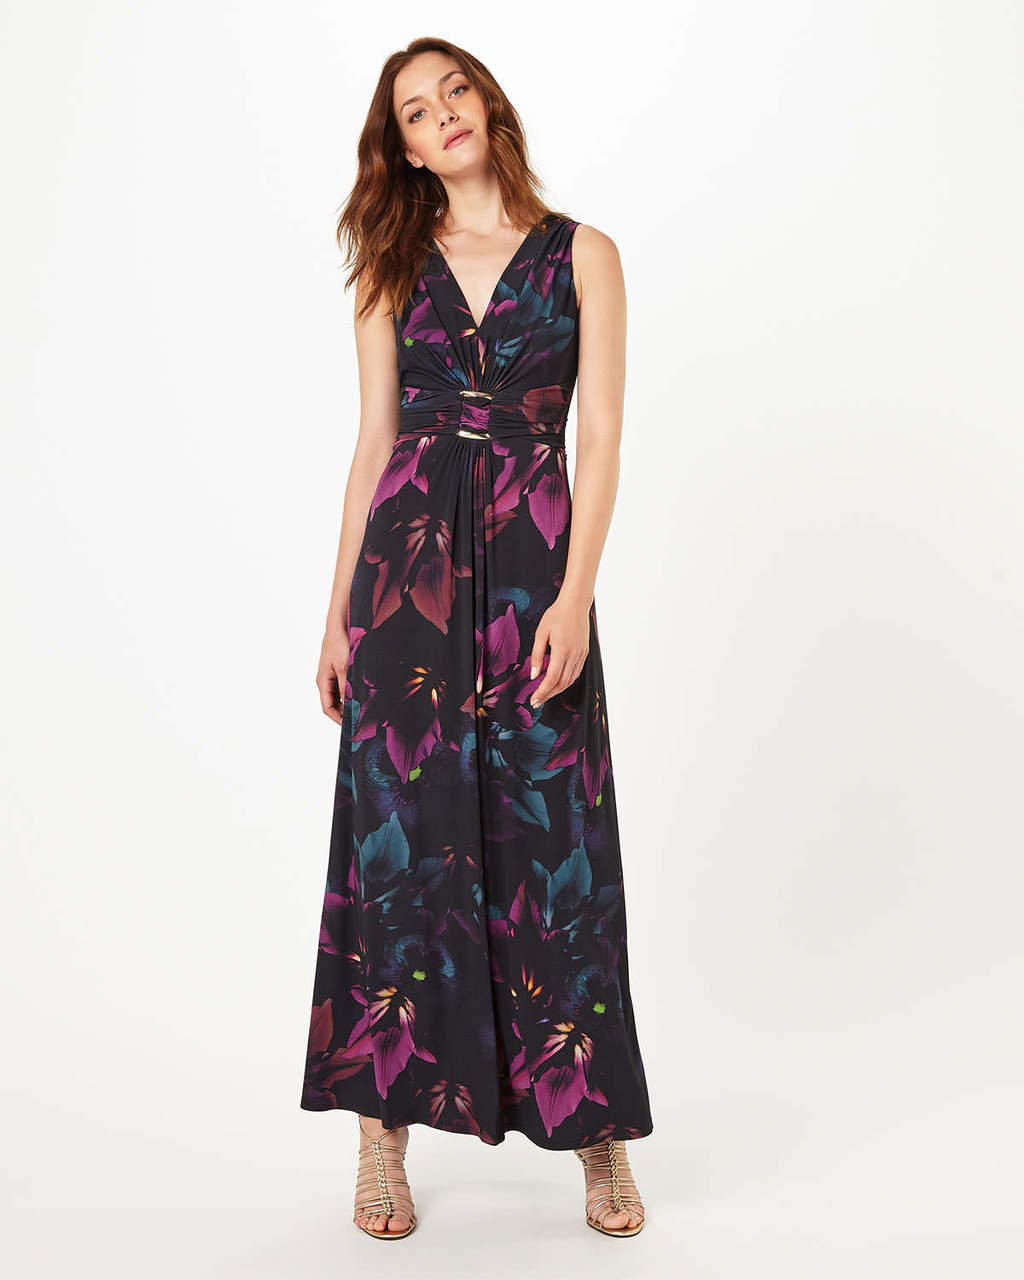 Monica Printed Maxi Dress - neckline: low v-neck; fit: fitted at waist; sleeve style: sleeveless; style: maxi dress; length: ankle length; secondary colour: hot pink; predominant colour: black; occasions: evening; fibres: polyester/polyamide - stretch; sleeve length: sleeveless; texture group: sheer fabrics/chiffon/organza etc.; pattern type: fabric; pattern: patterned/print; multicoloured: multicoloured; season: a/w 2016